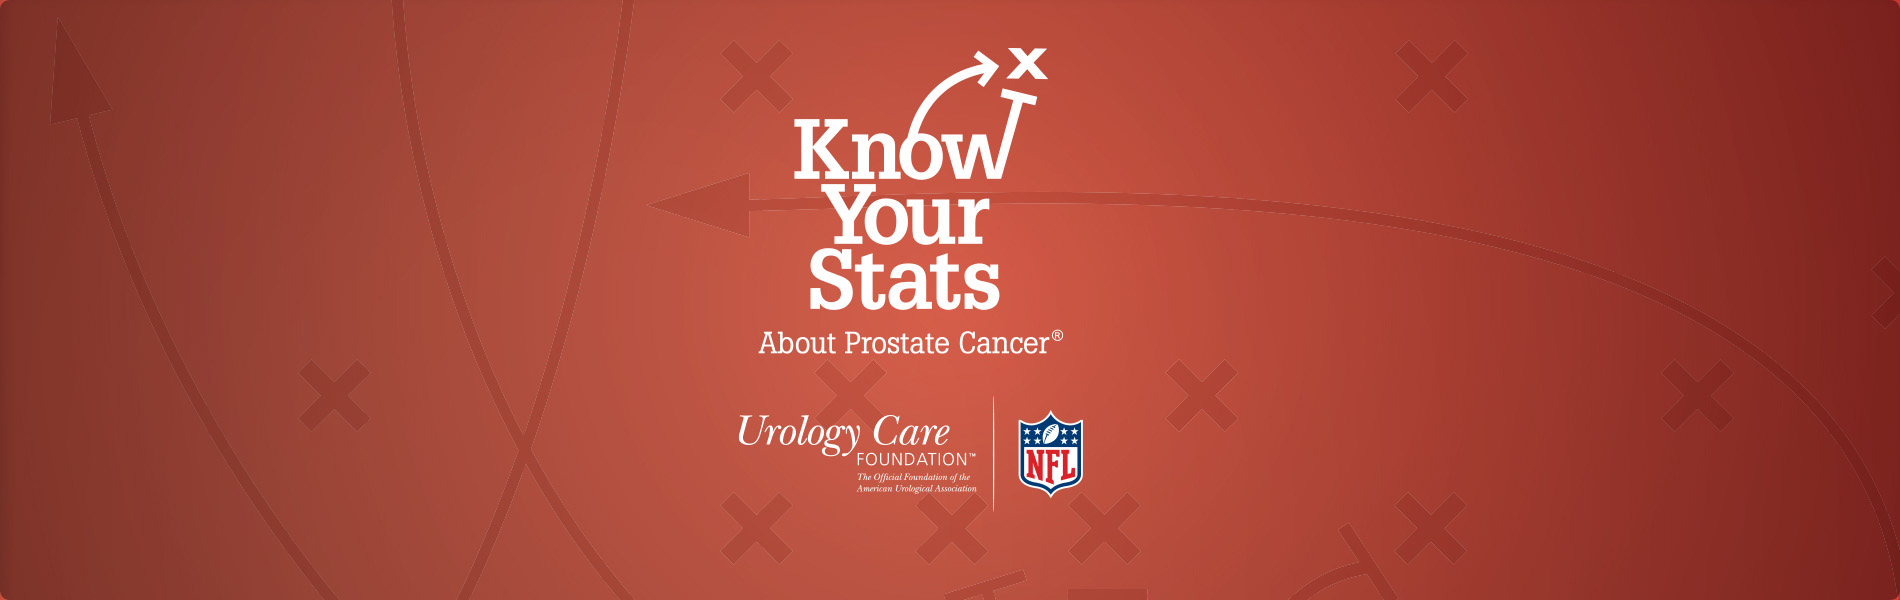 Urology Care Foundation and NFL Kick-Off Another Great